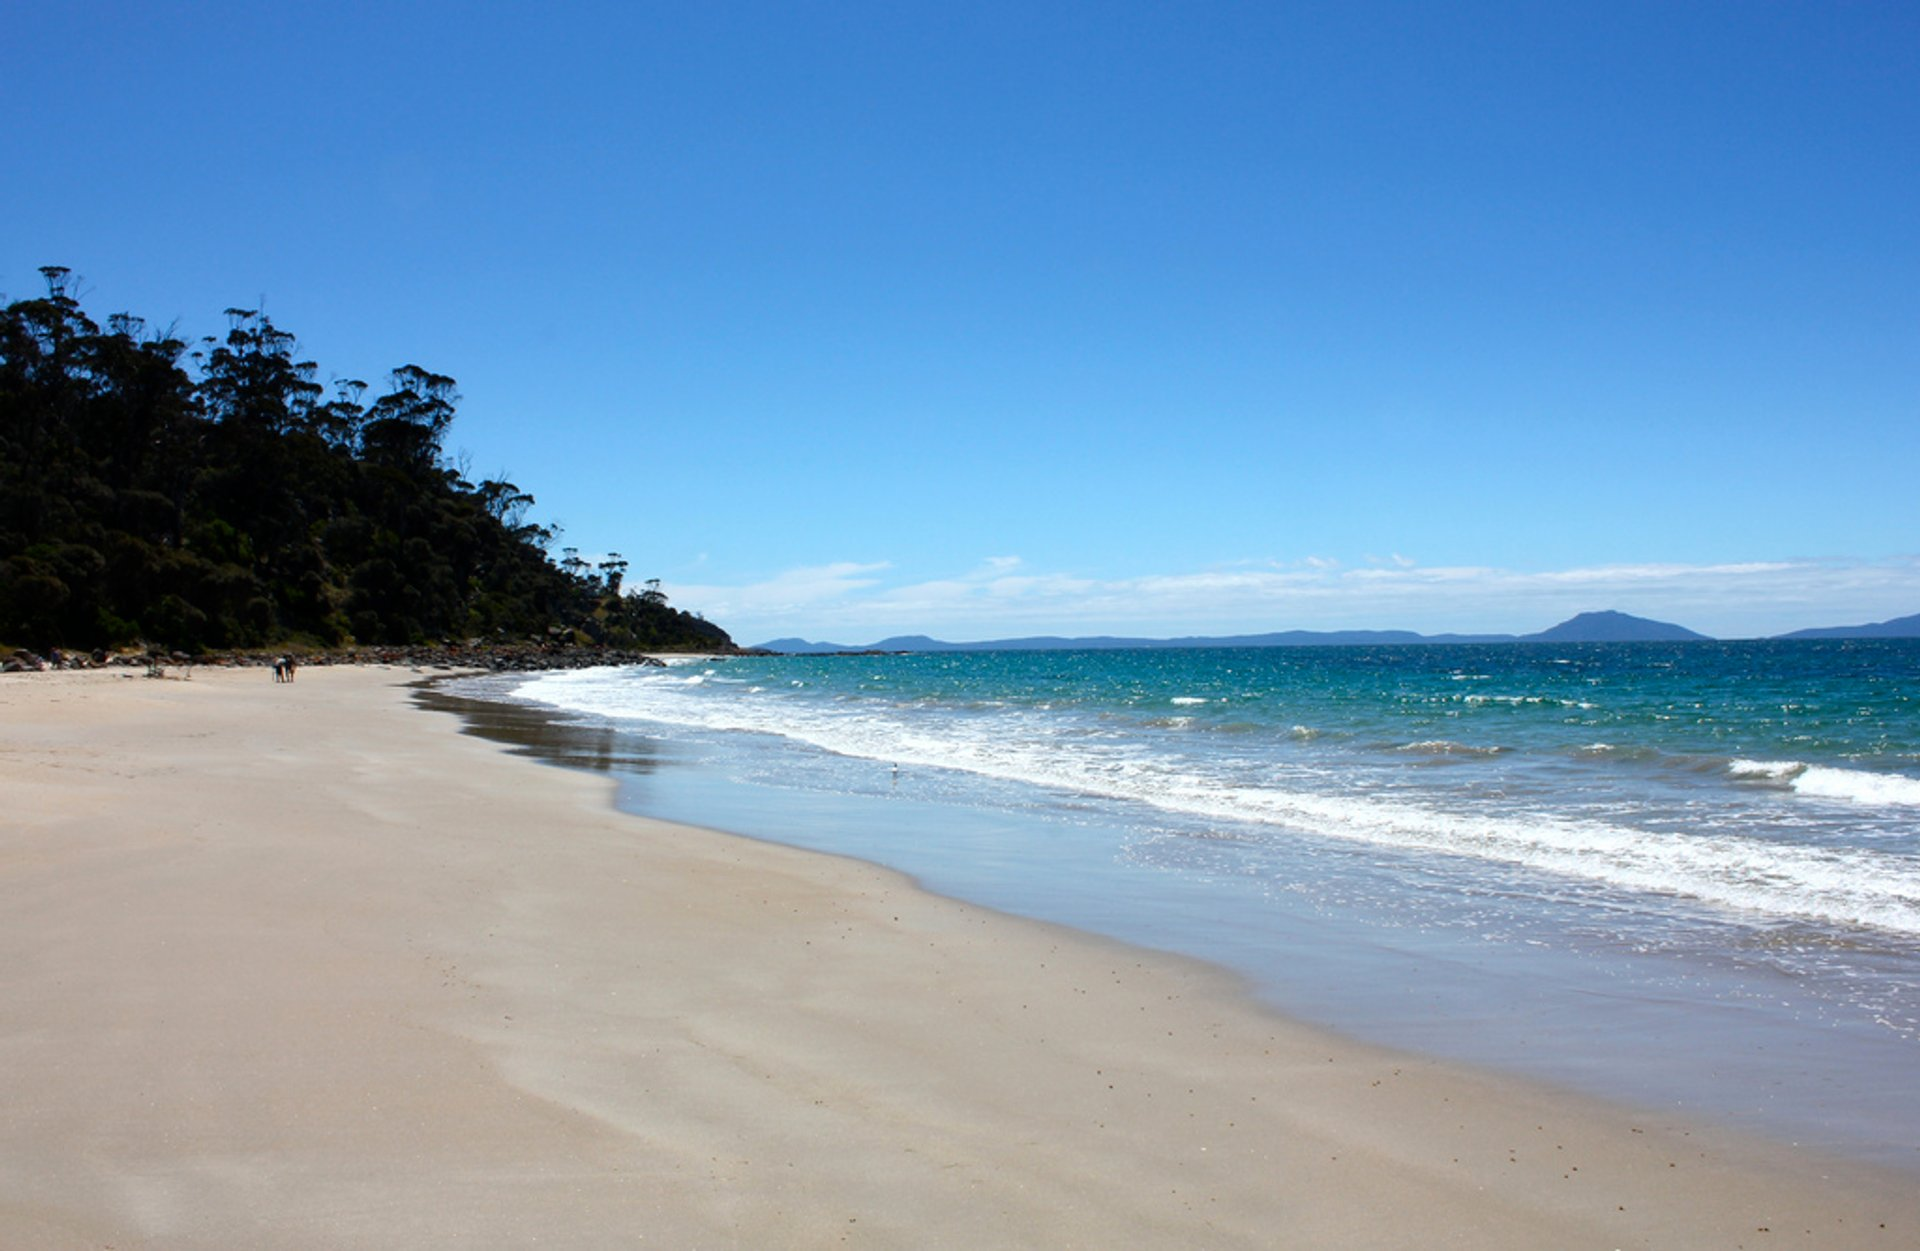 Tasmanian Beach Season in Tasmania - Best Season 2020